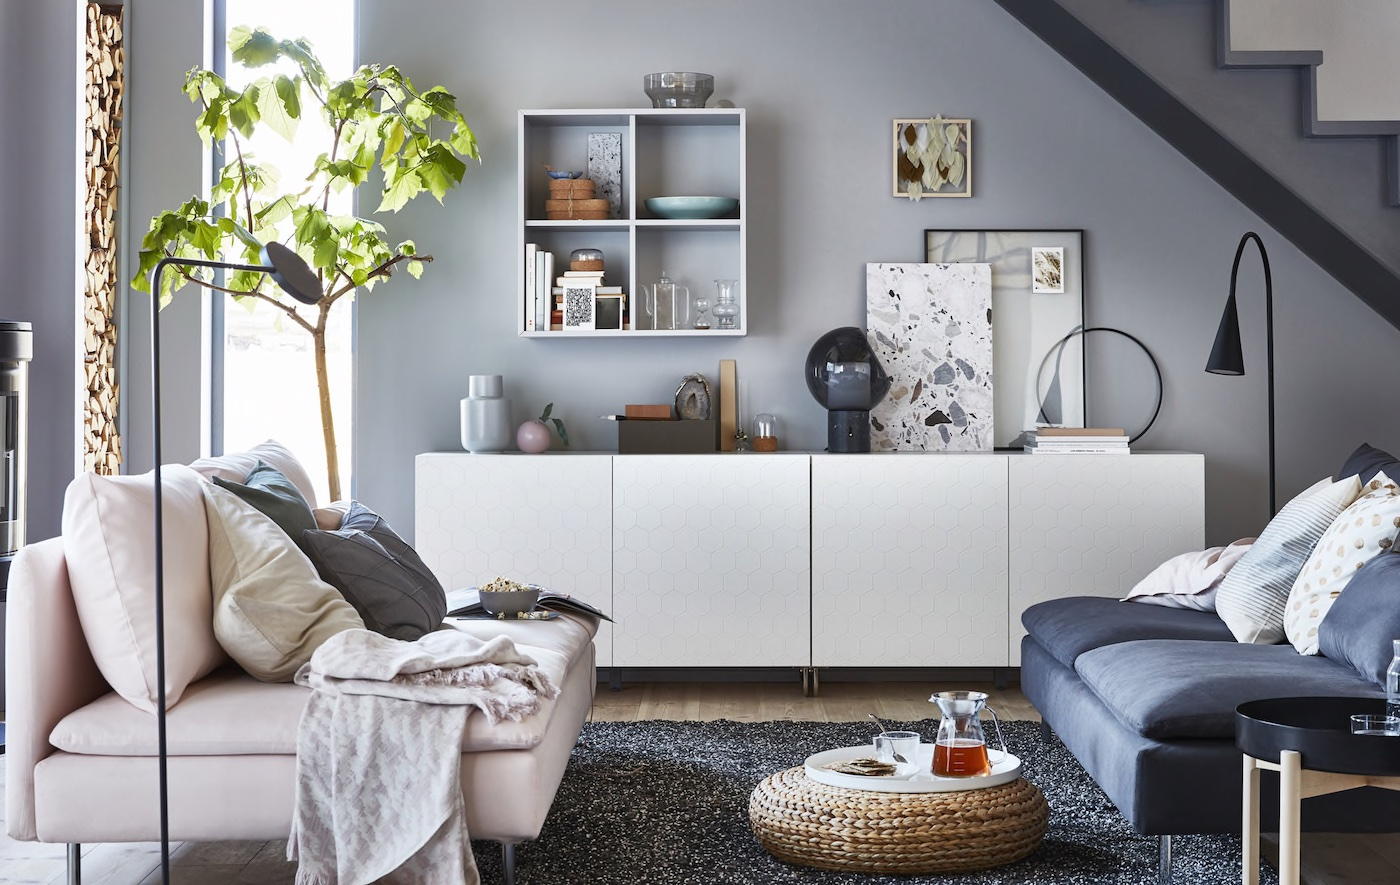 5 Of The Best Ikea Storage S To, Ikea Living Room Storage Cabinets Sideboards